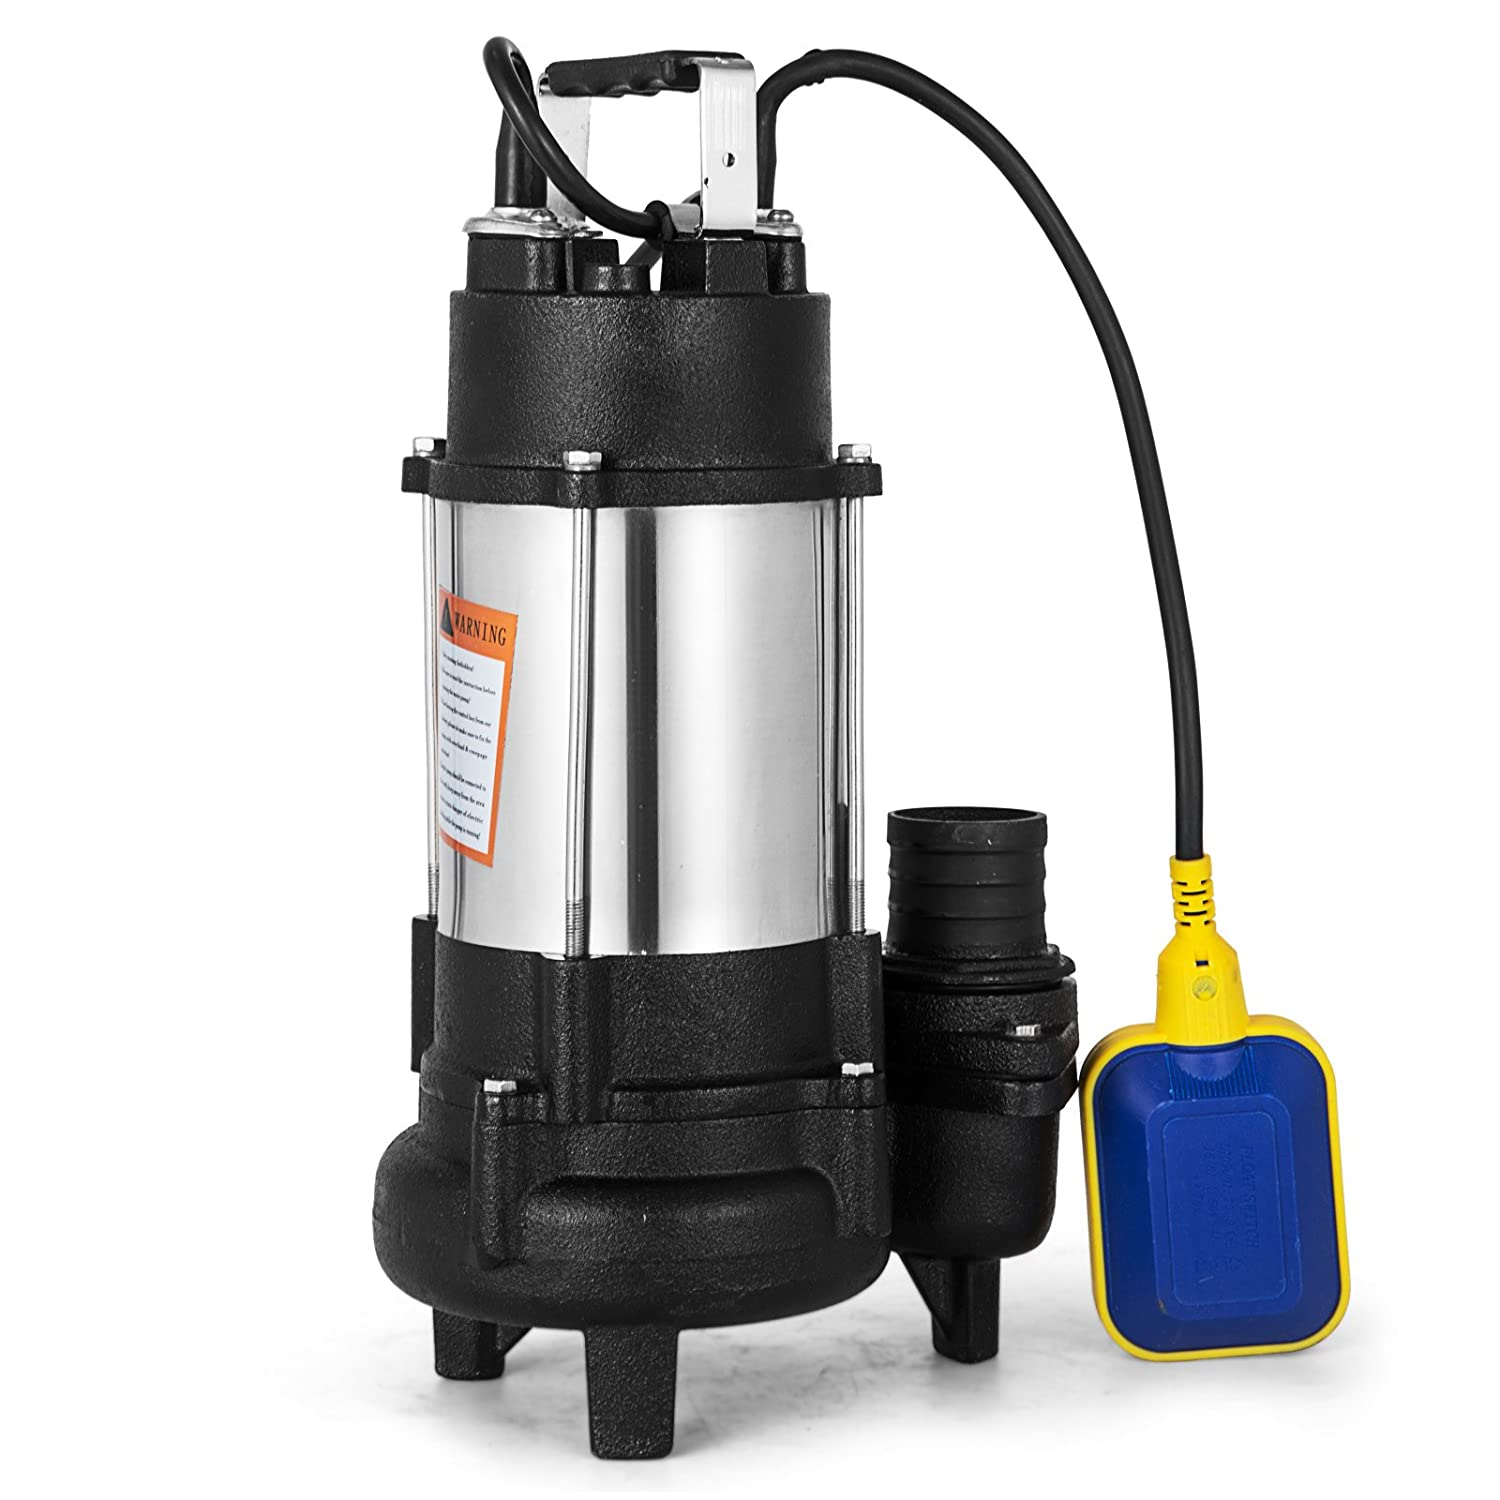 Happybuy Submersible Sewage Pump 110v 1hp Stainless Steel Electric Septic Wiring Outlet Removal 6340 Gph For Clean Dirty Water Transfer